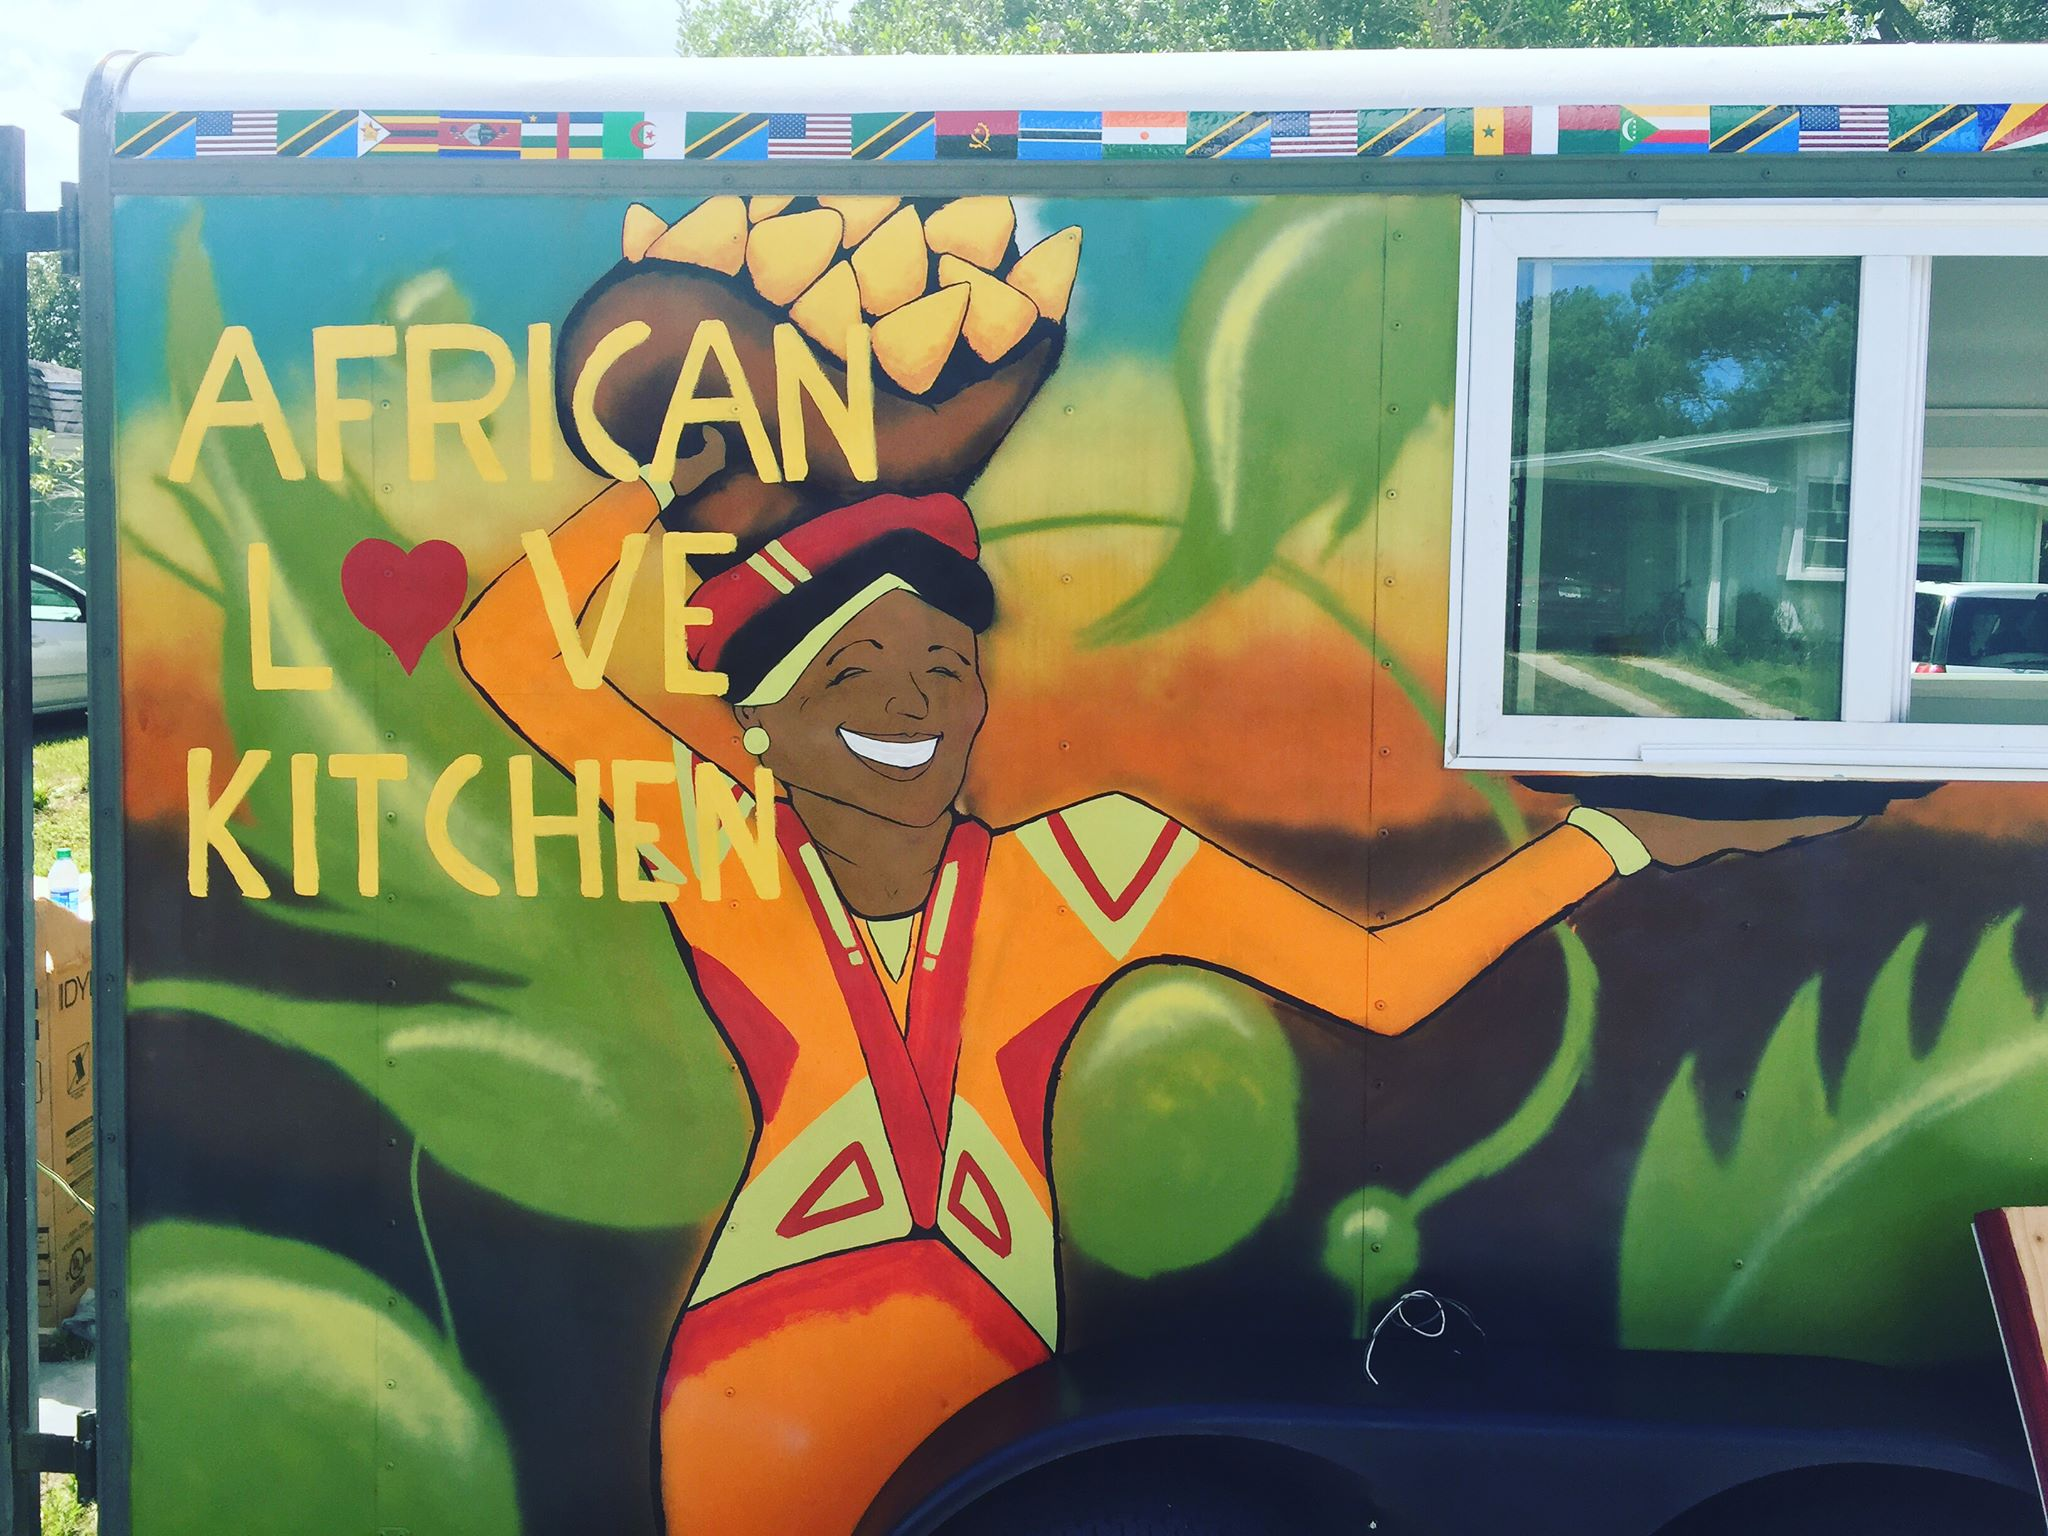 African Love Kitchen Food Truck Food Truck